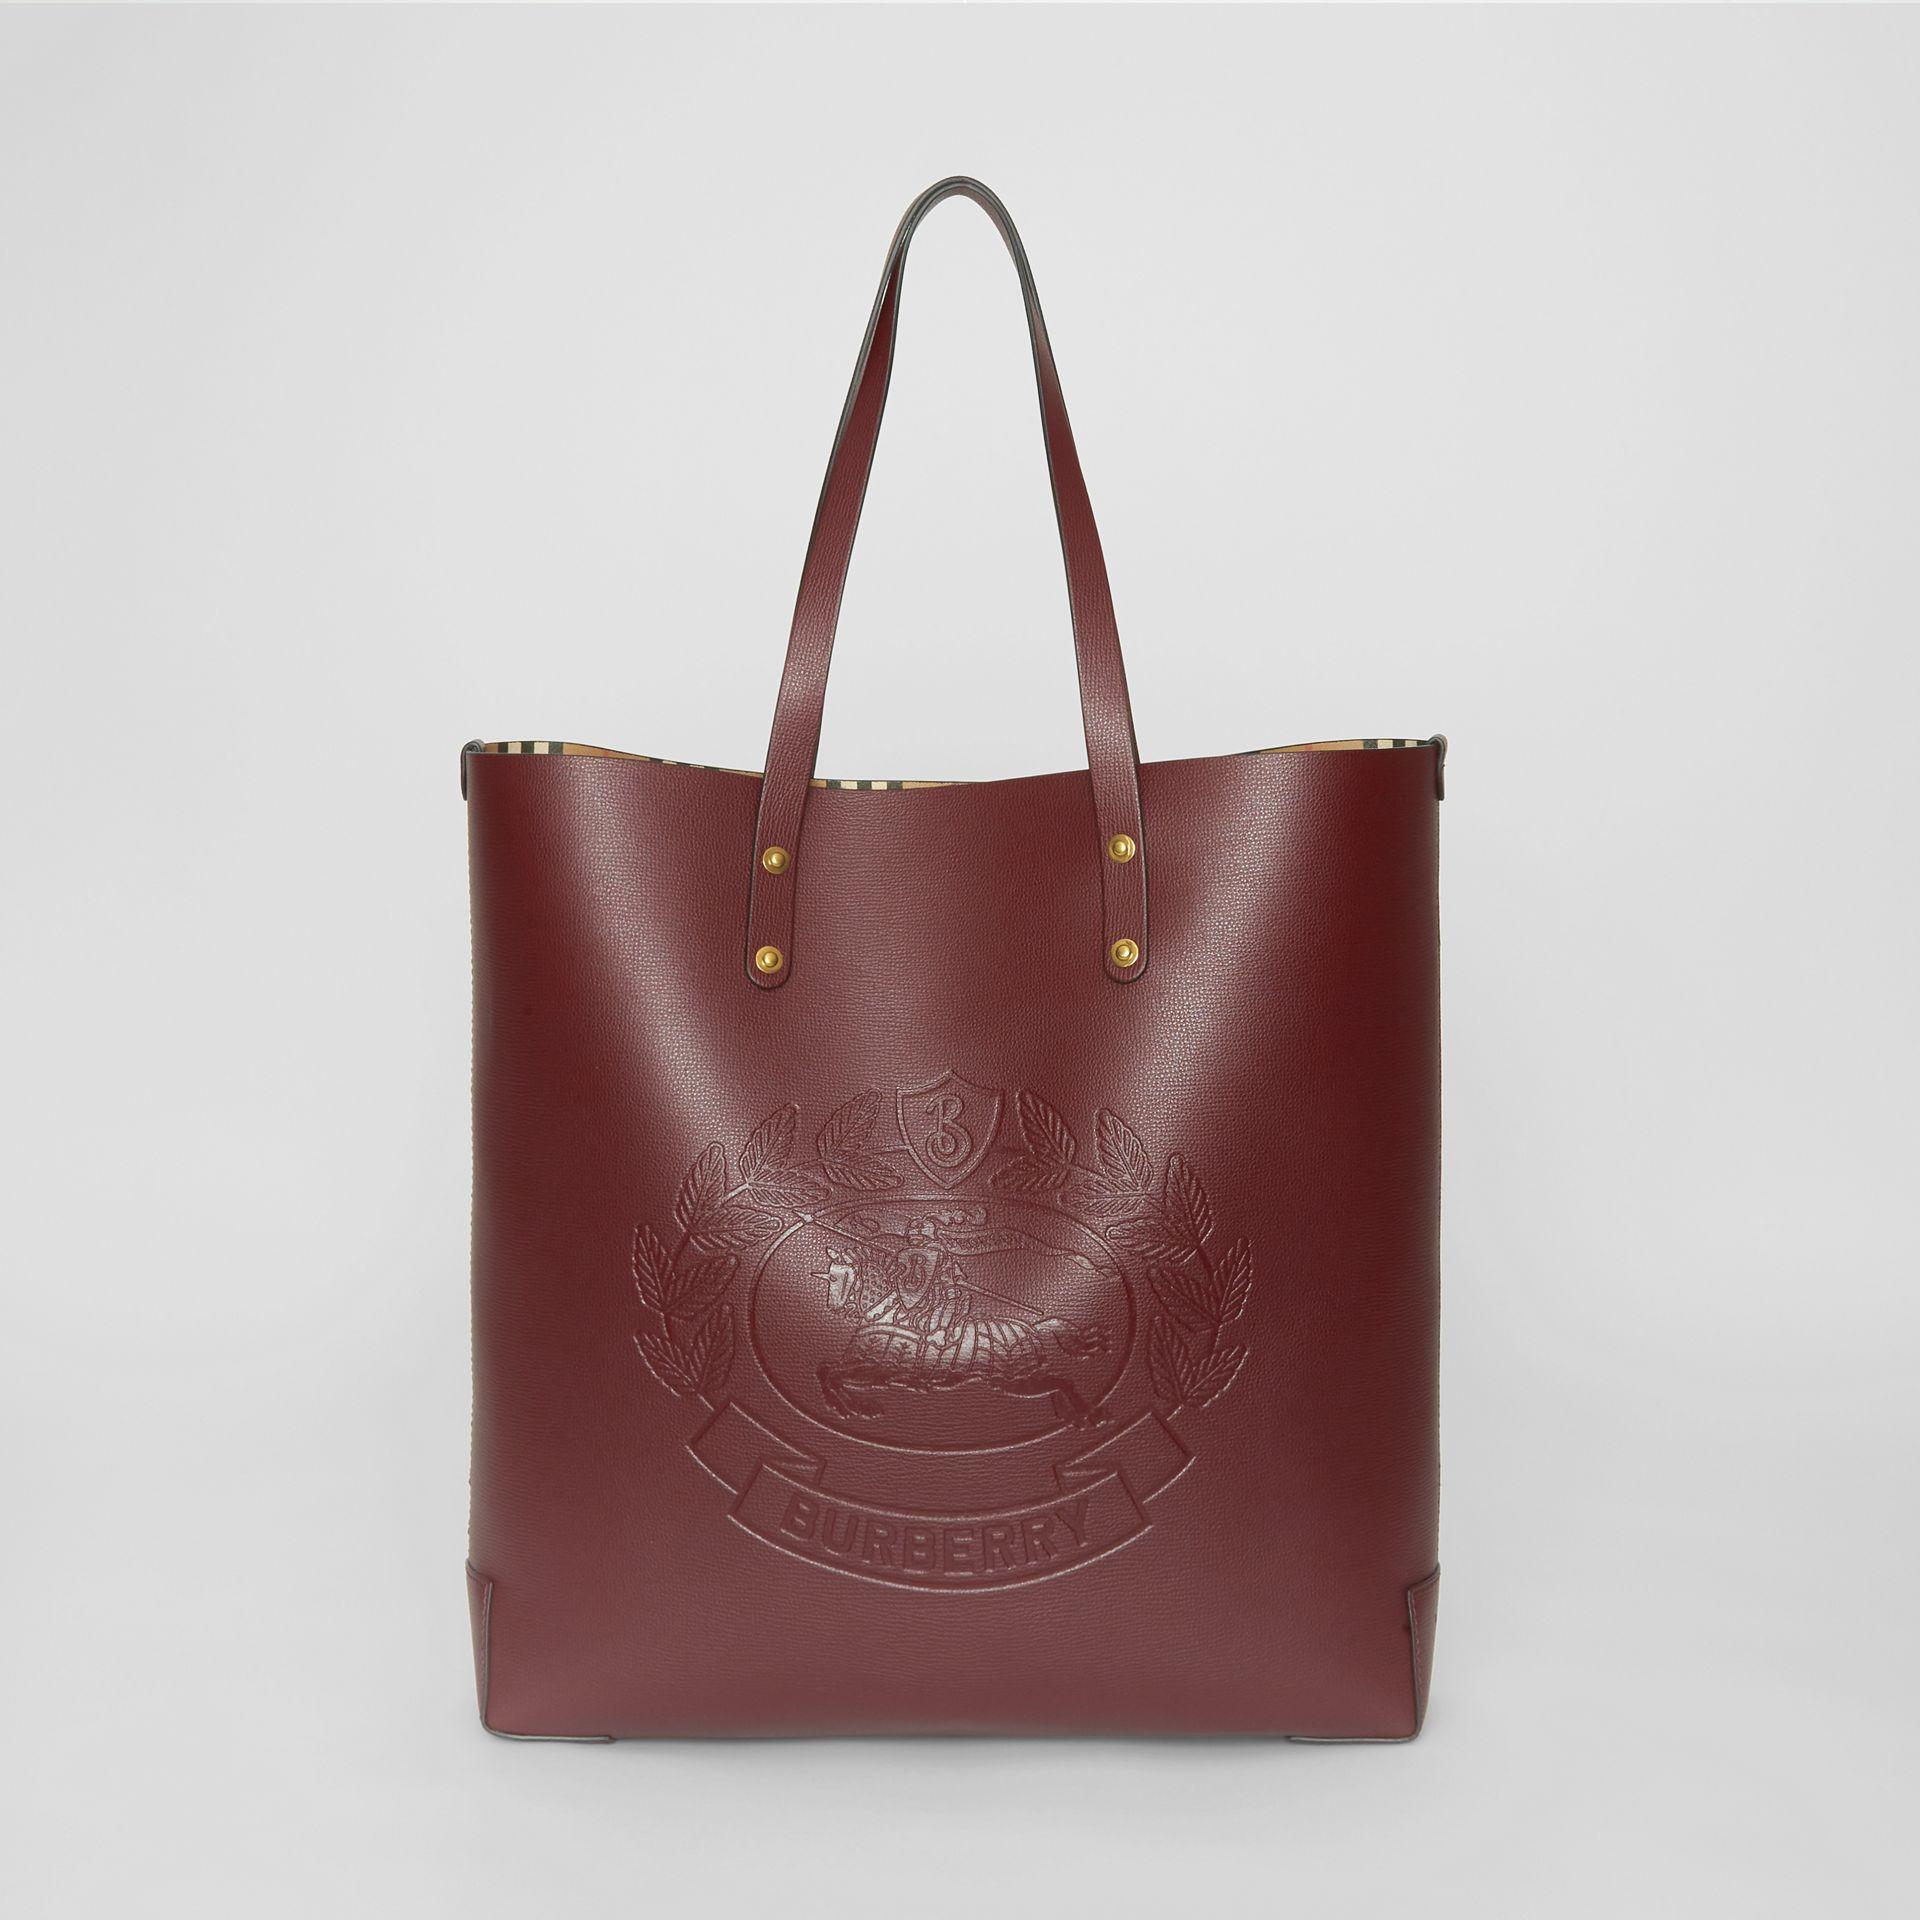 53681325a5f7 Burberry Large Embossed Crest Leather Tote In Burgundy